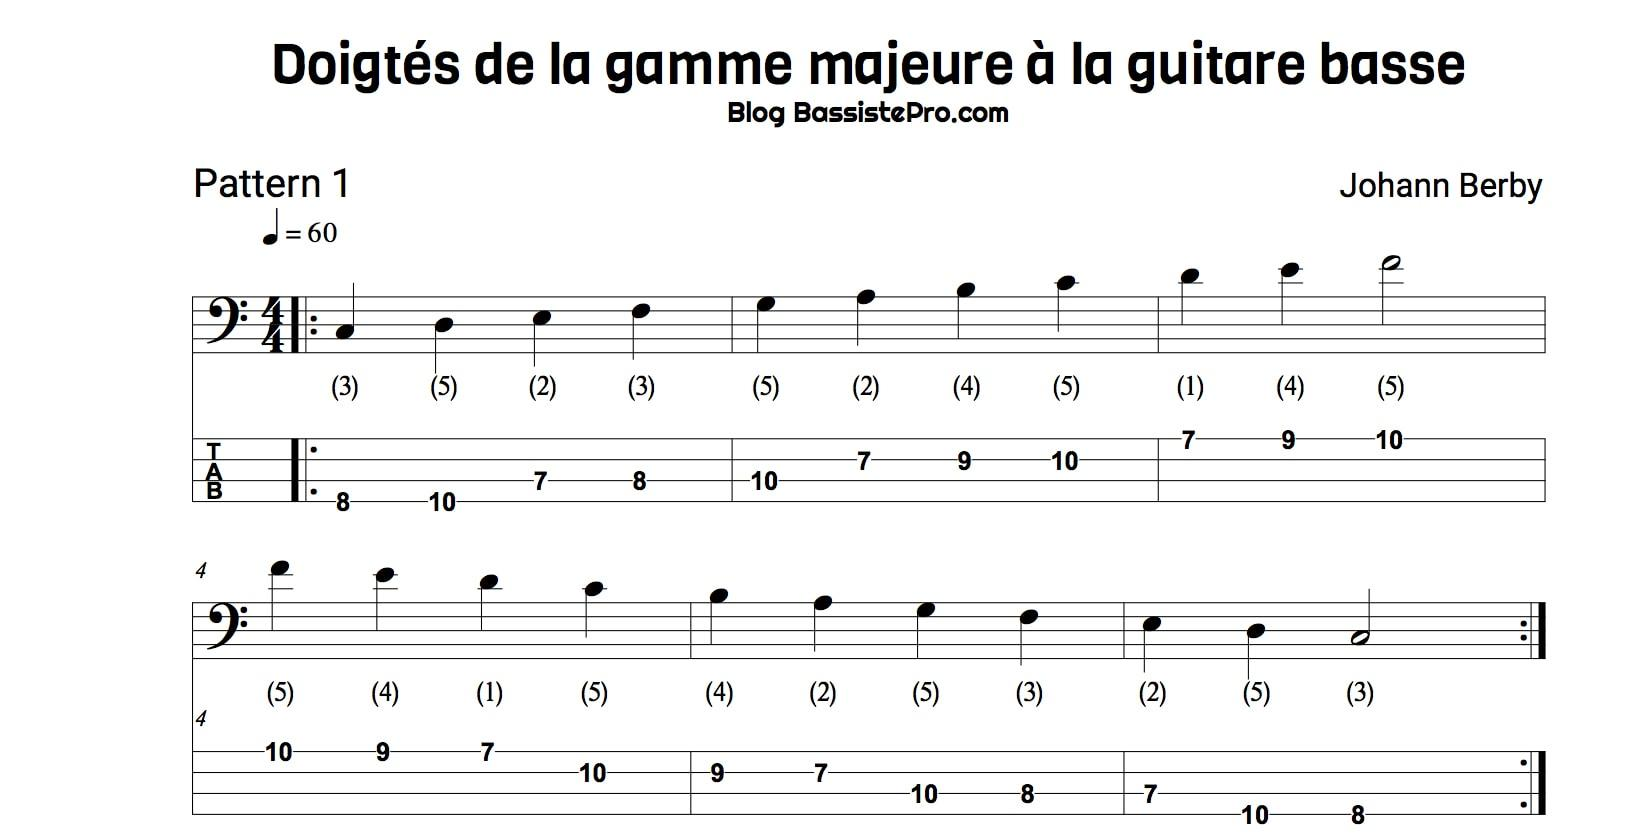 Doigtes gamme majeure guitare basse Pattern 1